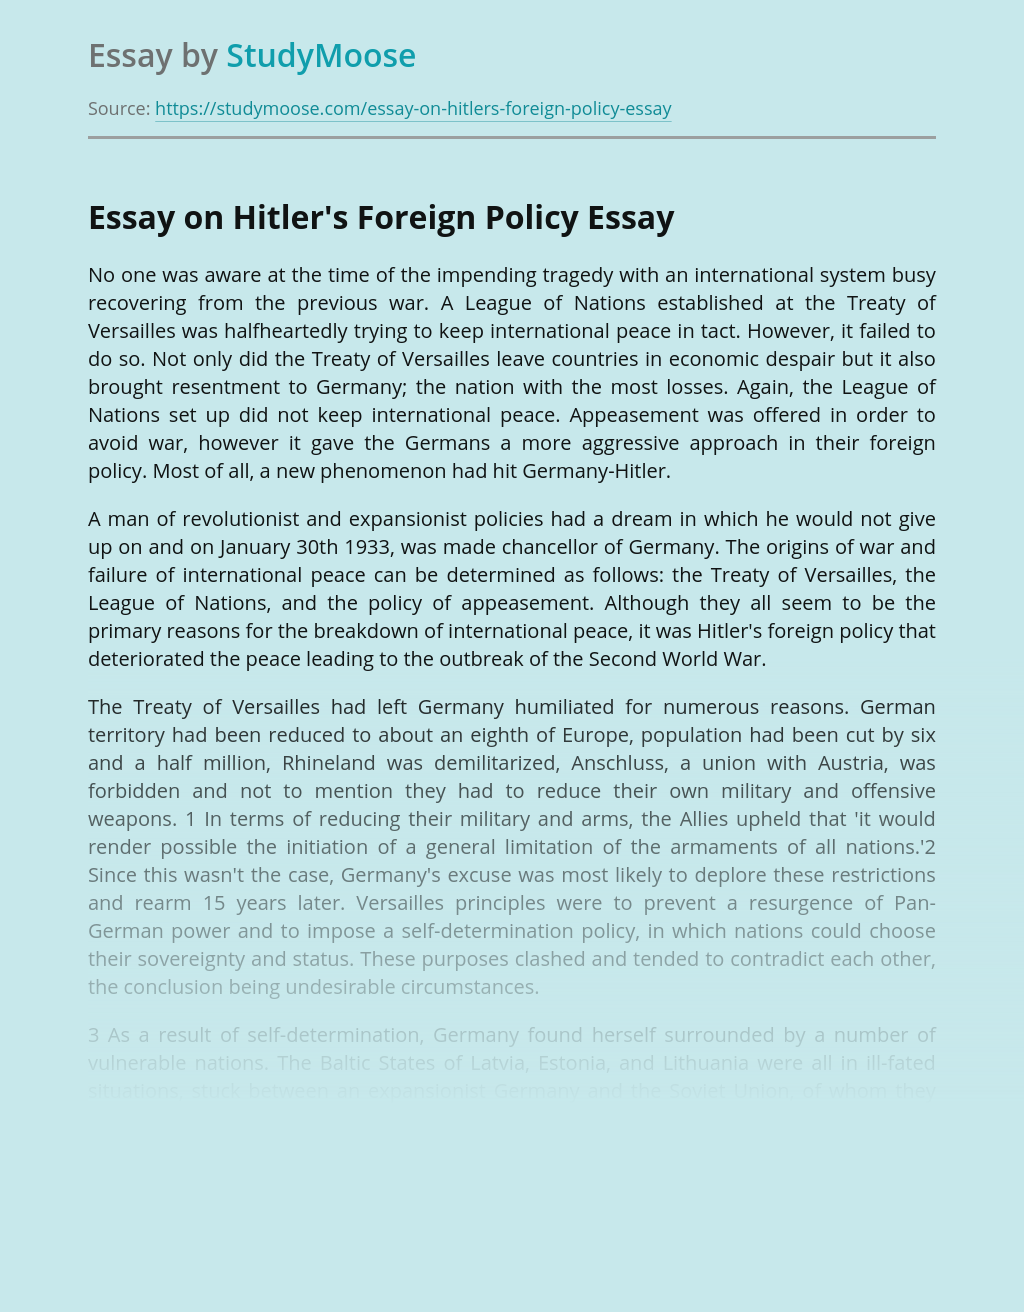 Essay on Hitler's Foreign Policy